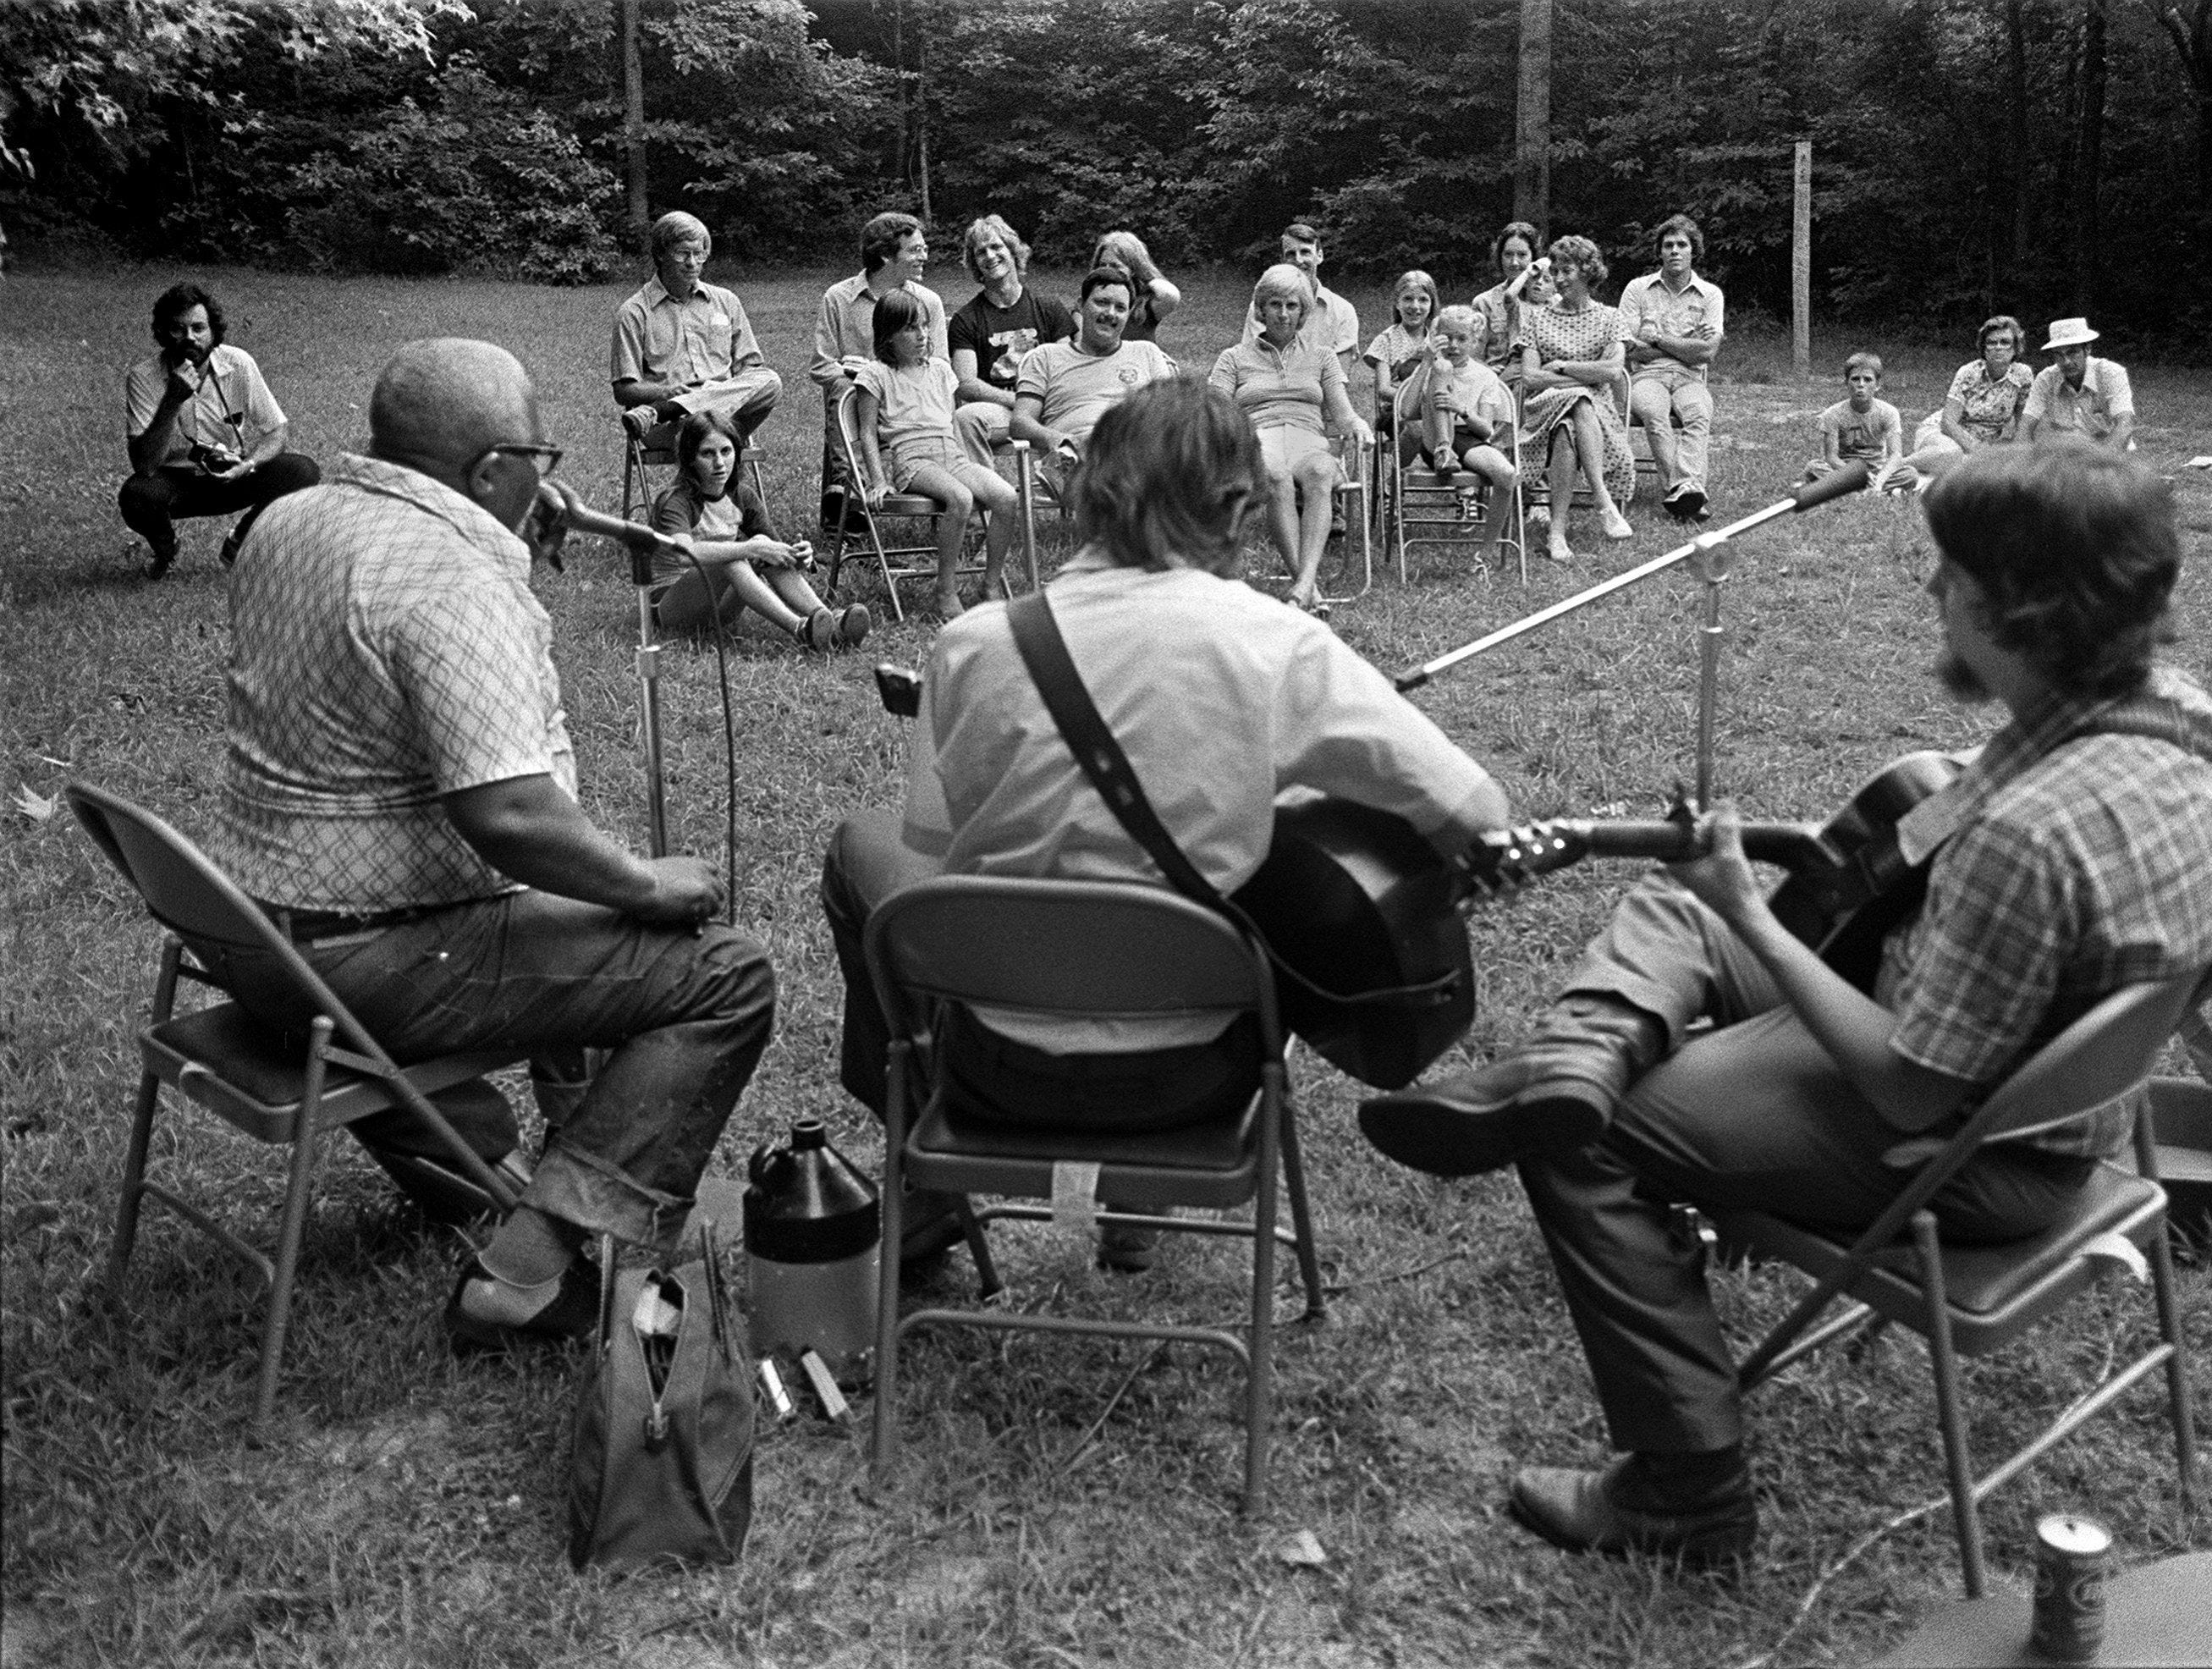 Hammie Nixon performing in Shelby Forest July 20, 1979. With Nixon (left) are Dave Evans (center) and John Hunninen.